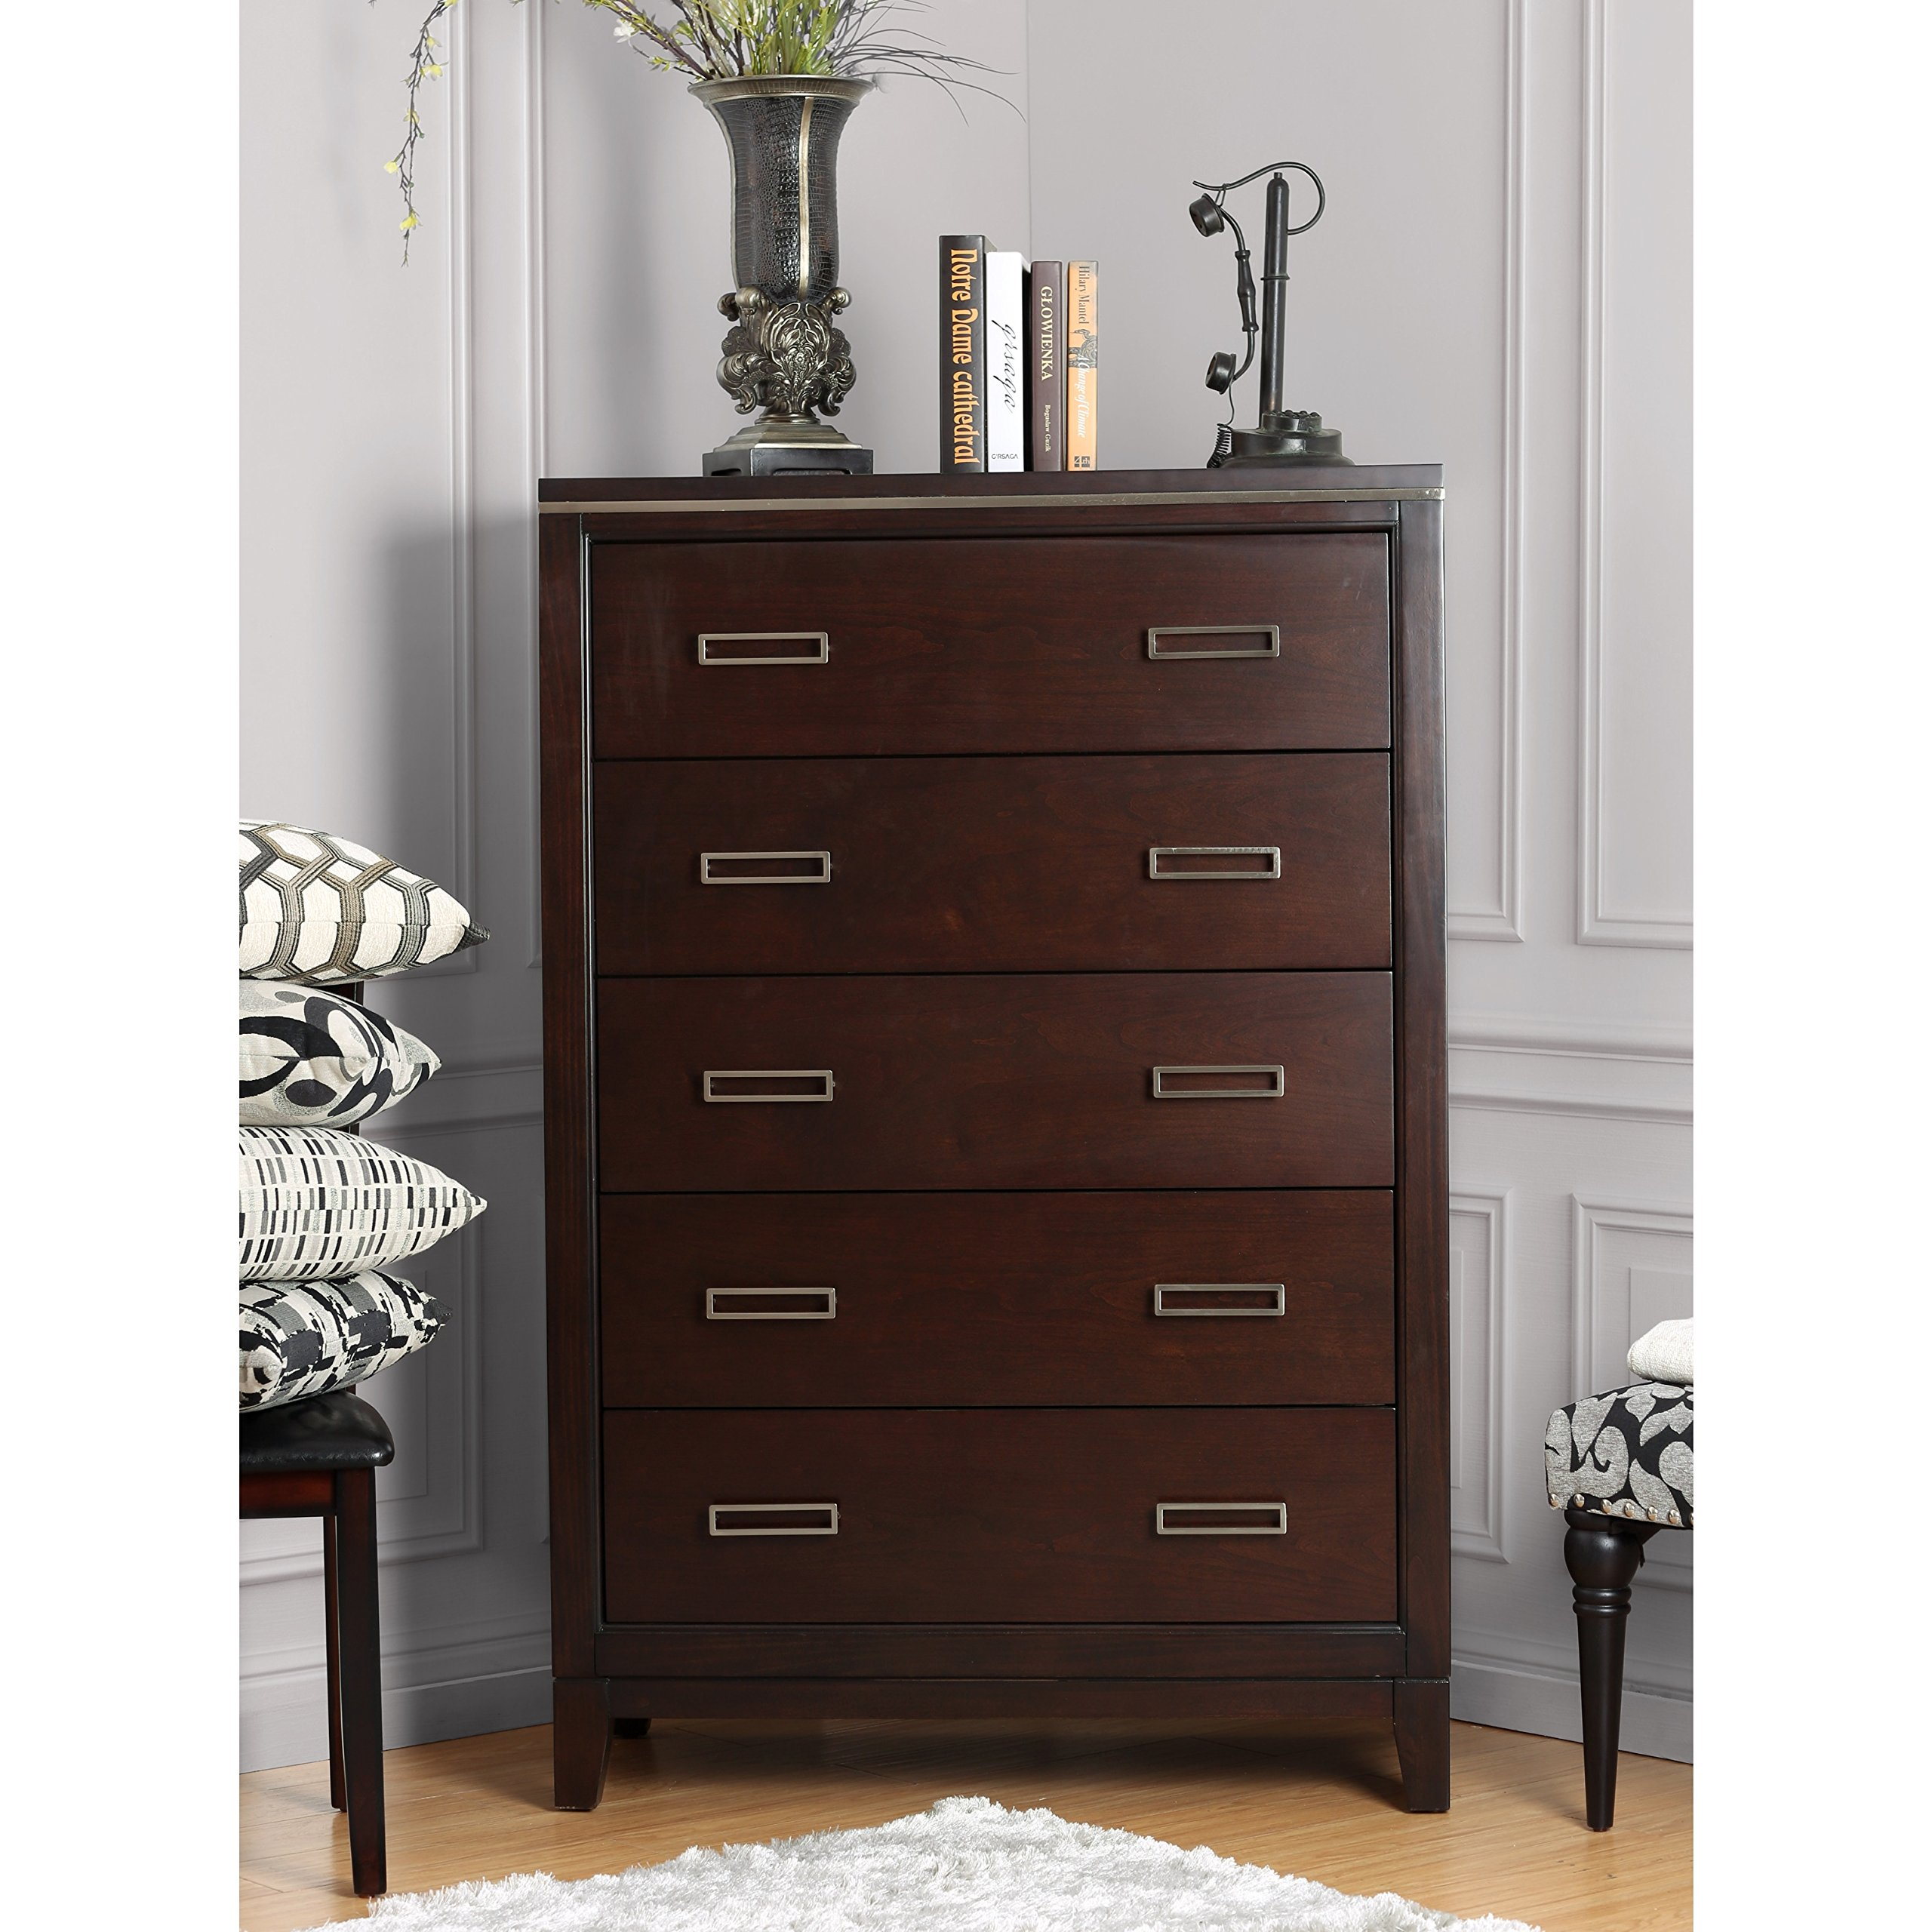 Furniture of America Derraugh Contemporary Cherry 5-drawer Chest